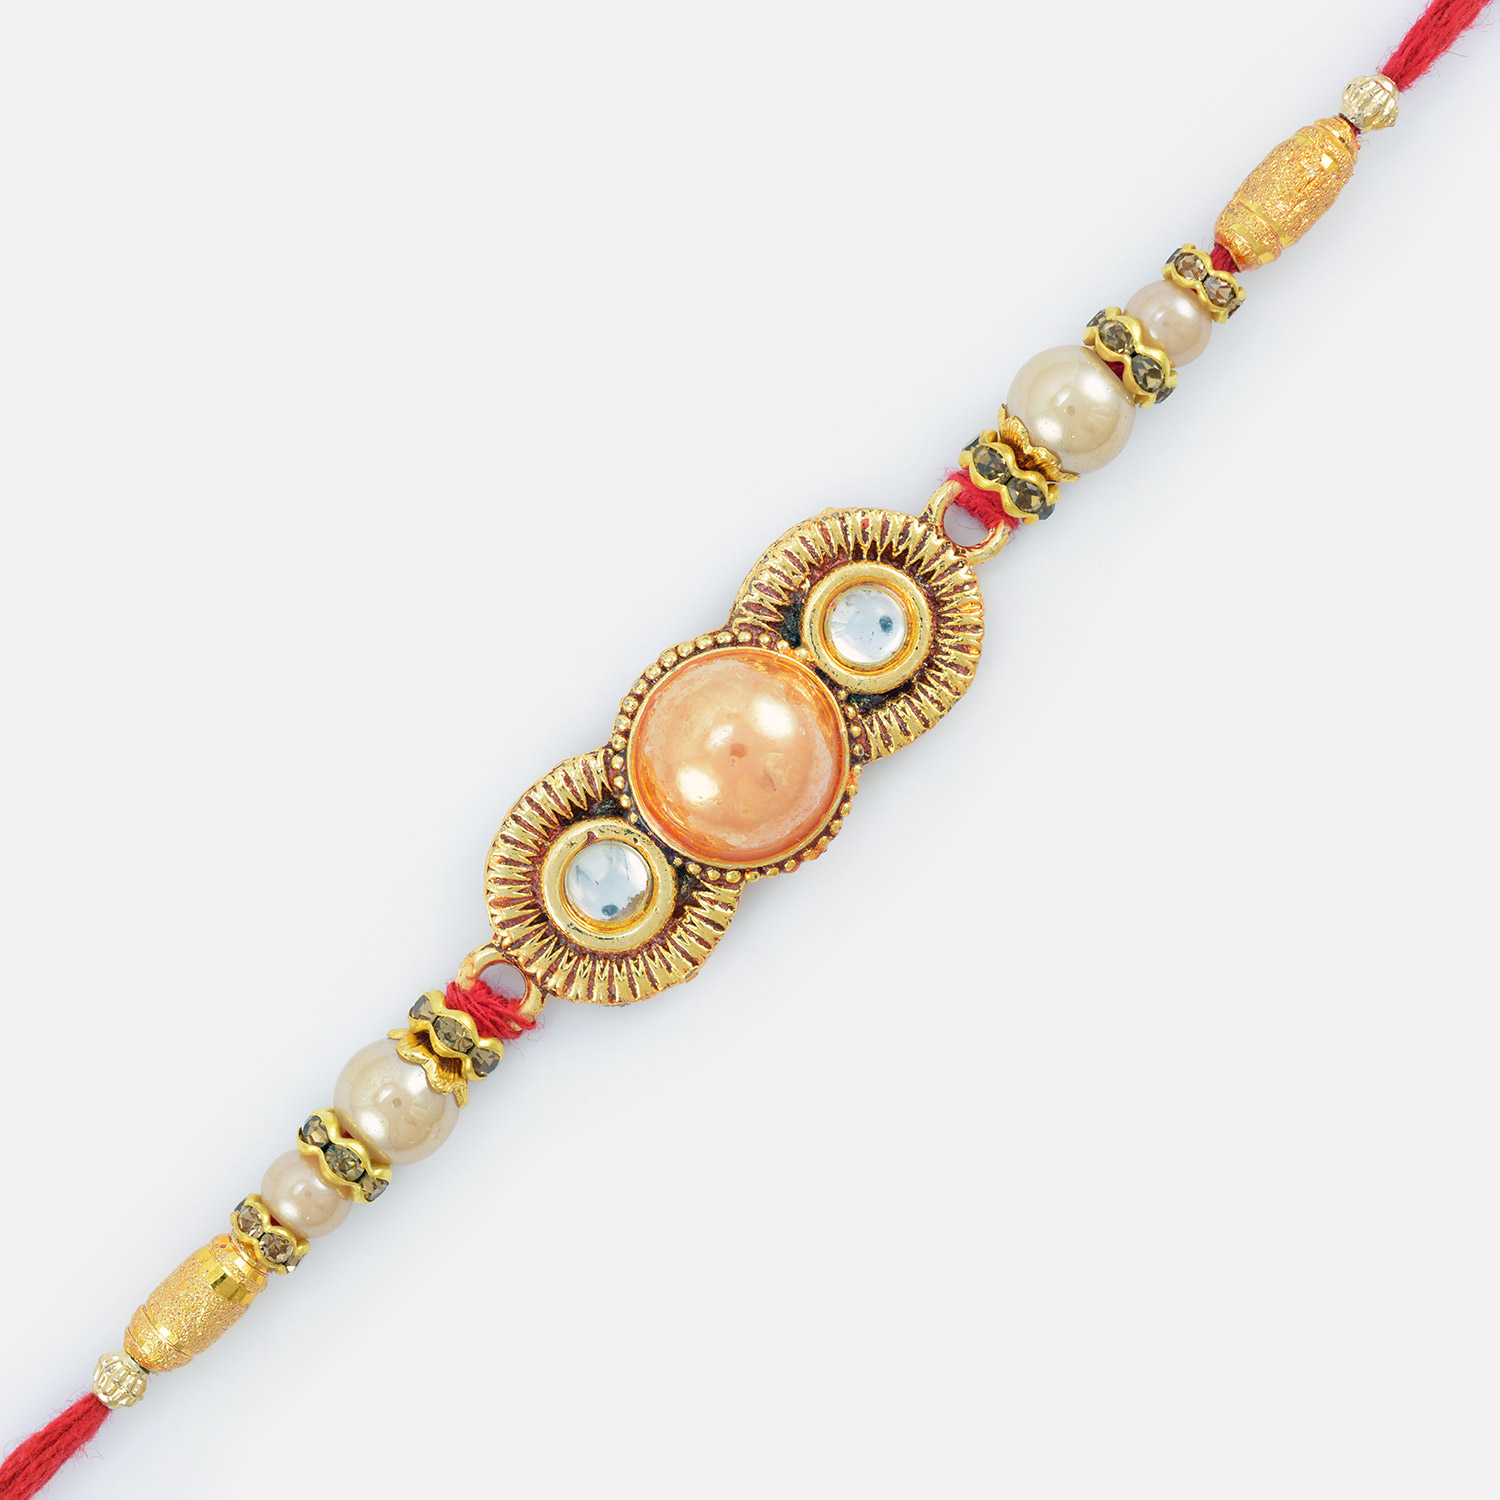 Spectacular Golden Designed Embossed Pearl Rakhi